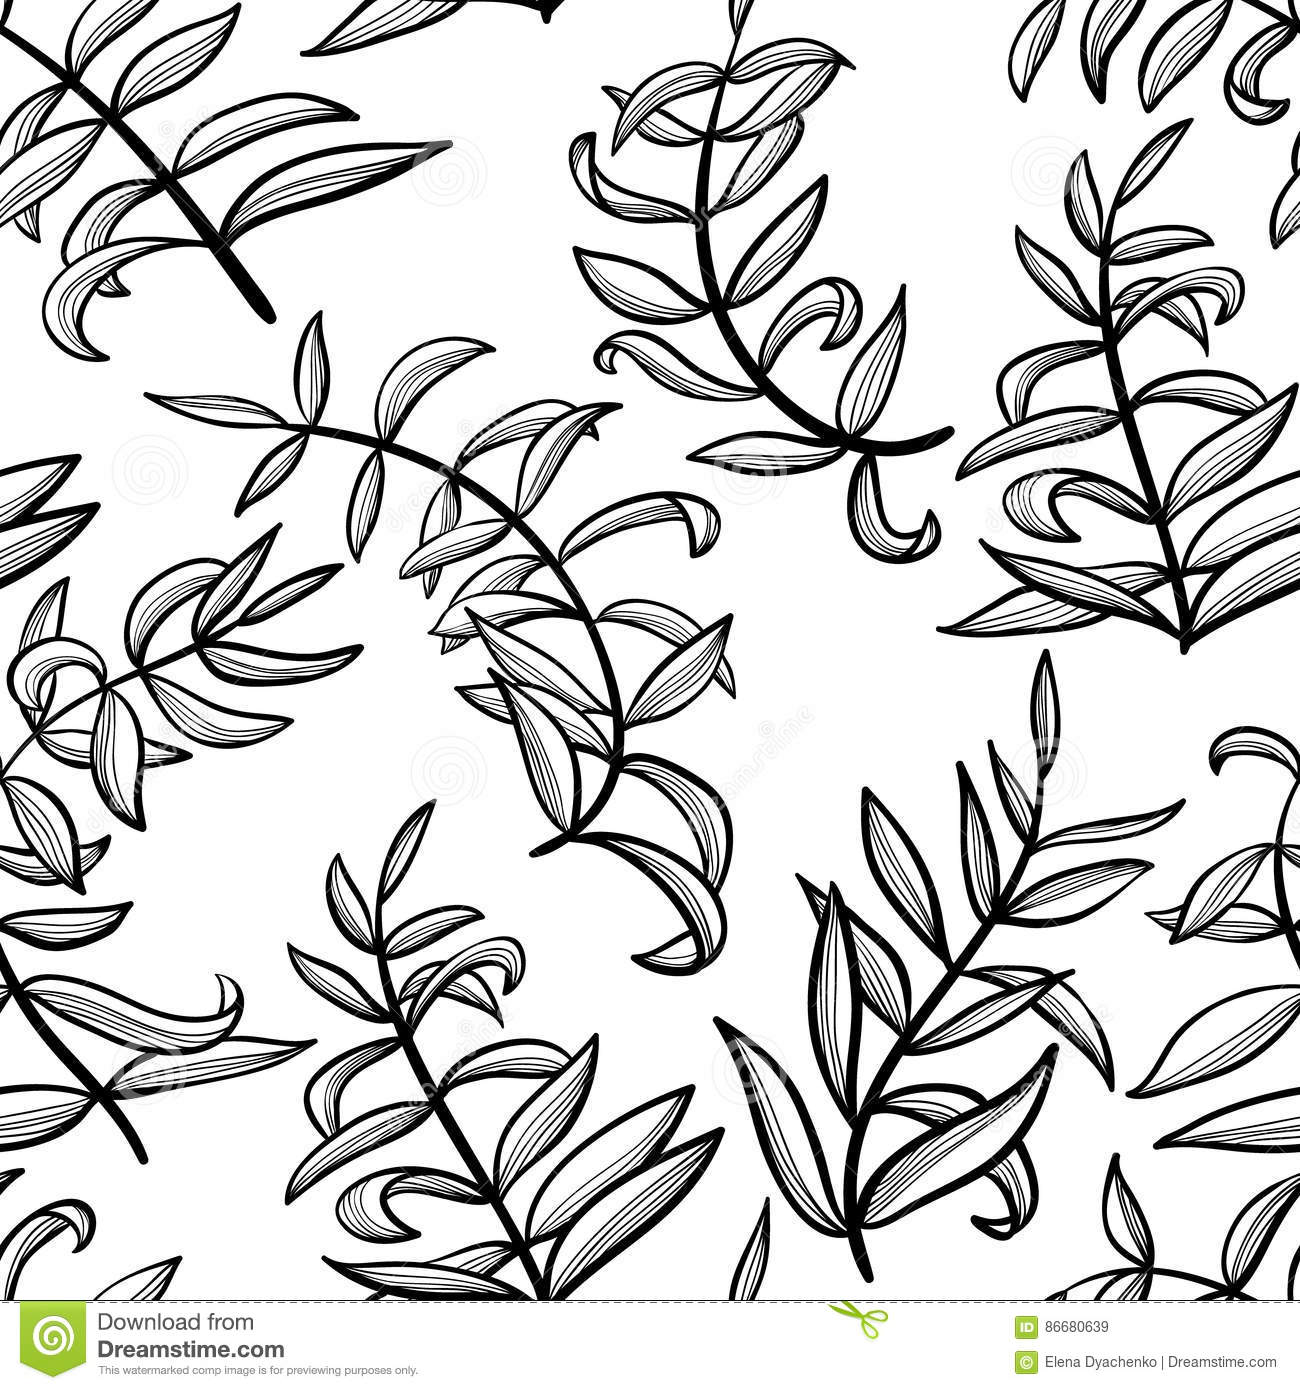 Simple Line Art Background : Line art seamless pattern with plants doodle simple